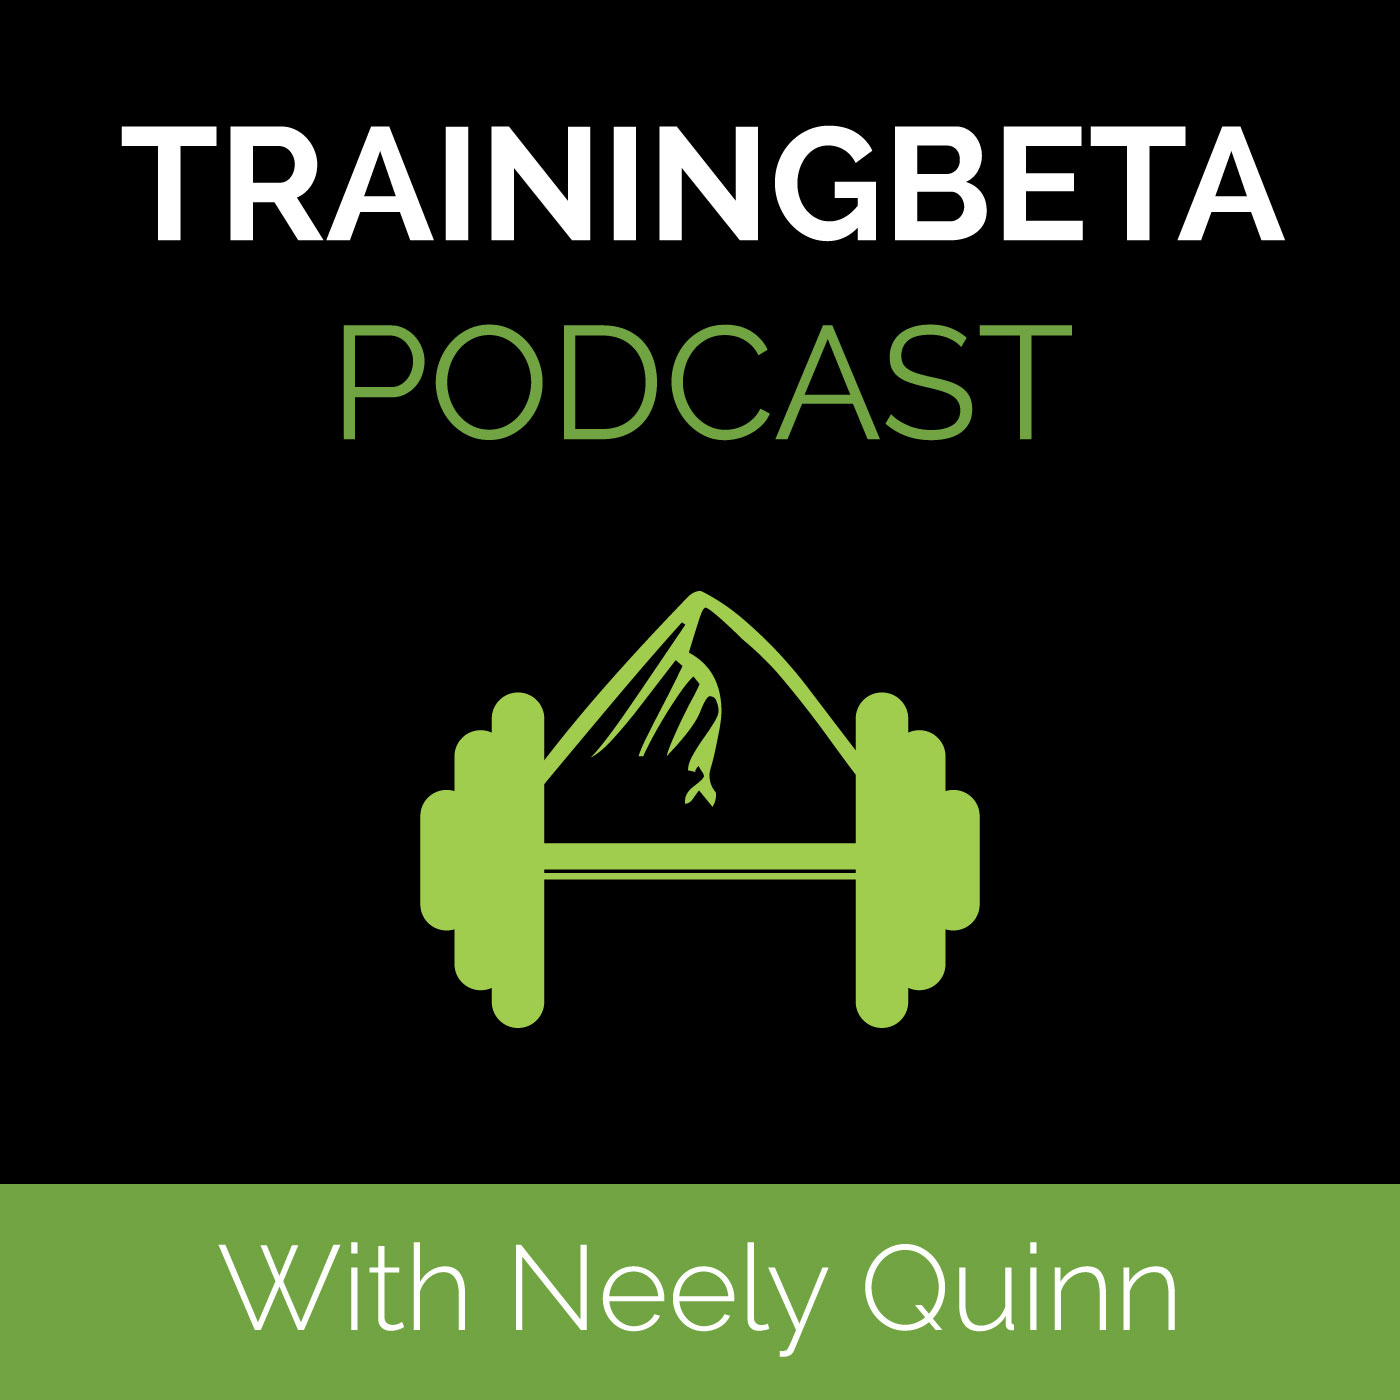 The TrainingBeta Podcast: A Climbing Training Podcast show art